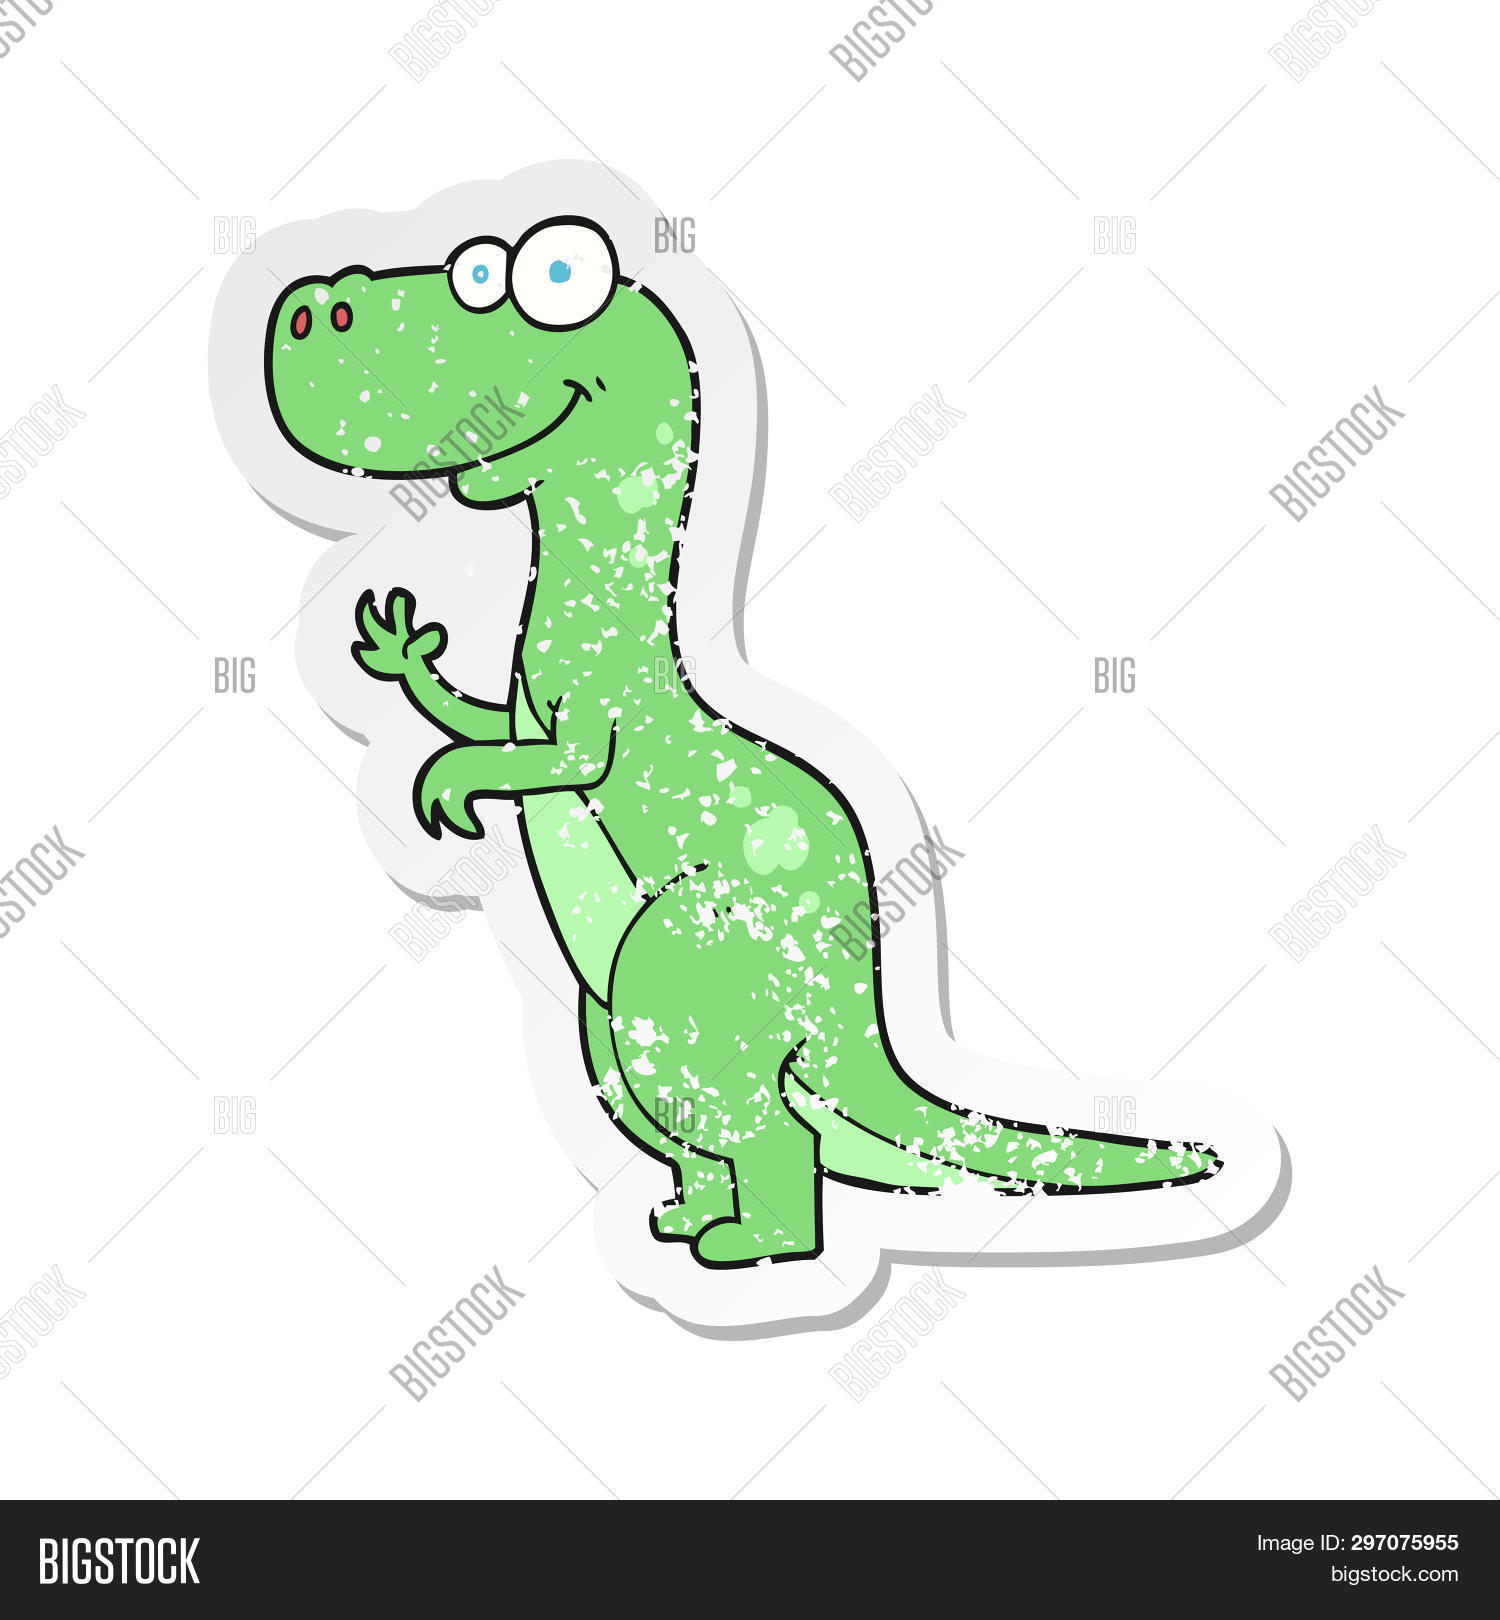 retro distressed sticker of a cartoon dinosaur